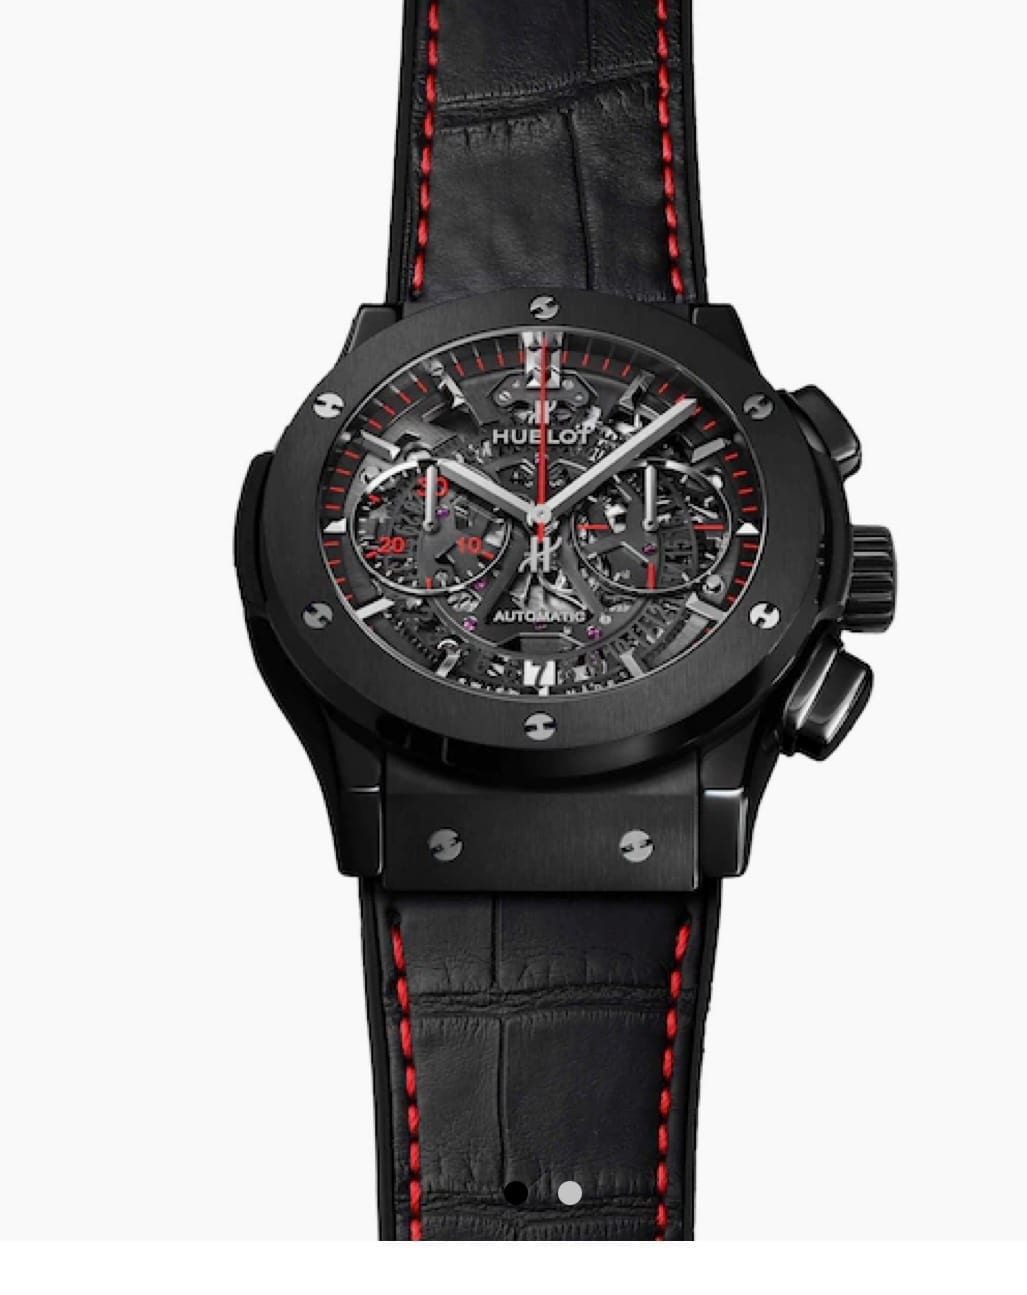 New Hublot watch special edition